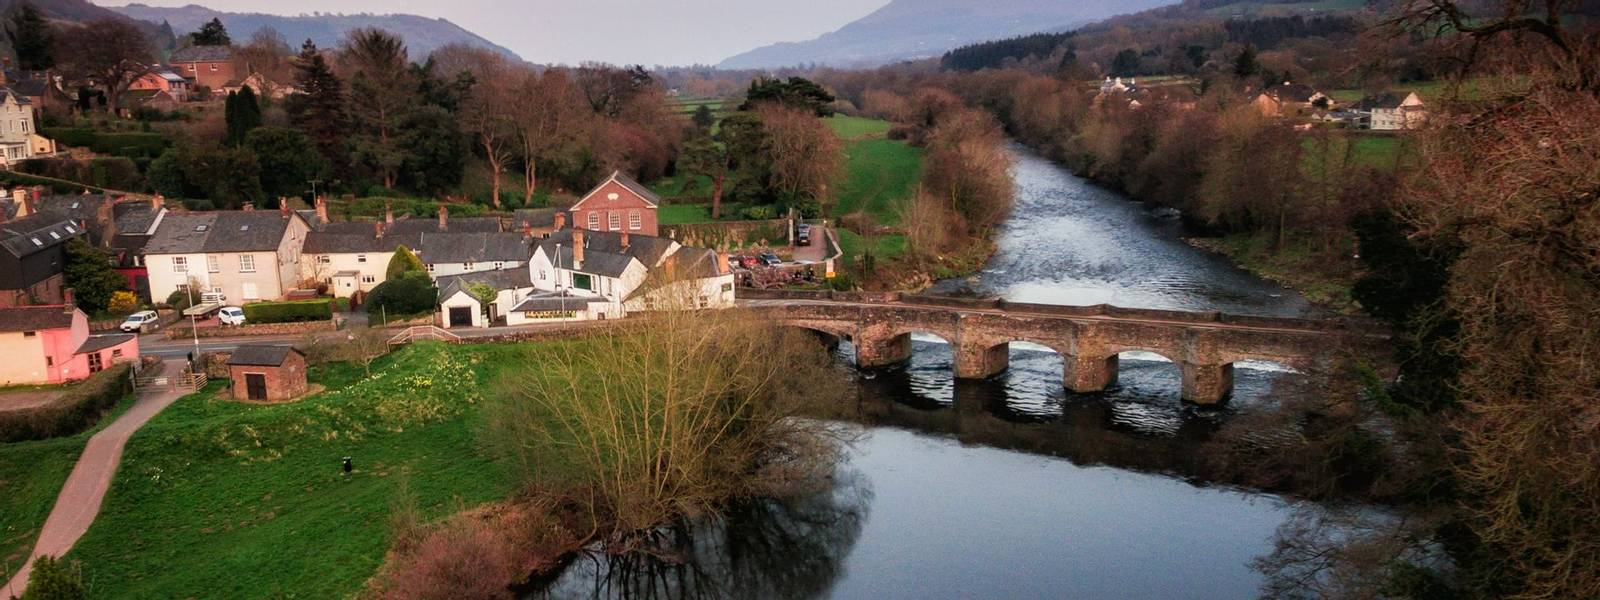 An aerial view of the Welsh Town Crickhowell and River Usk